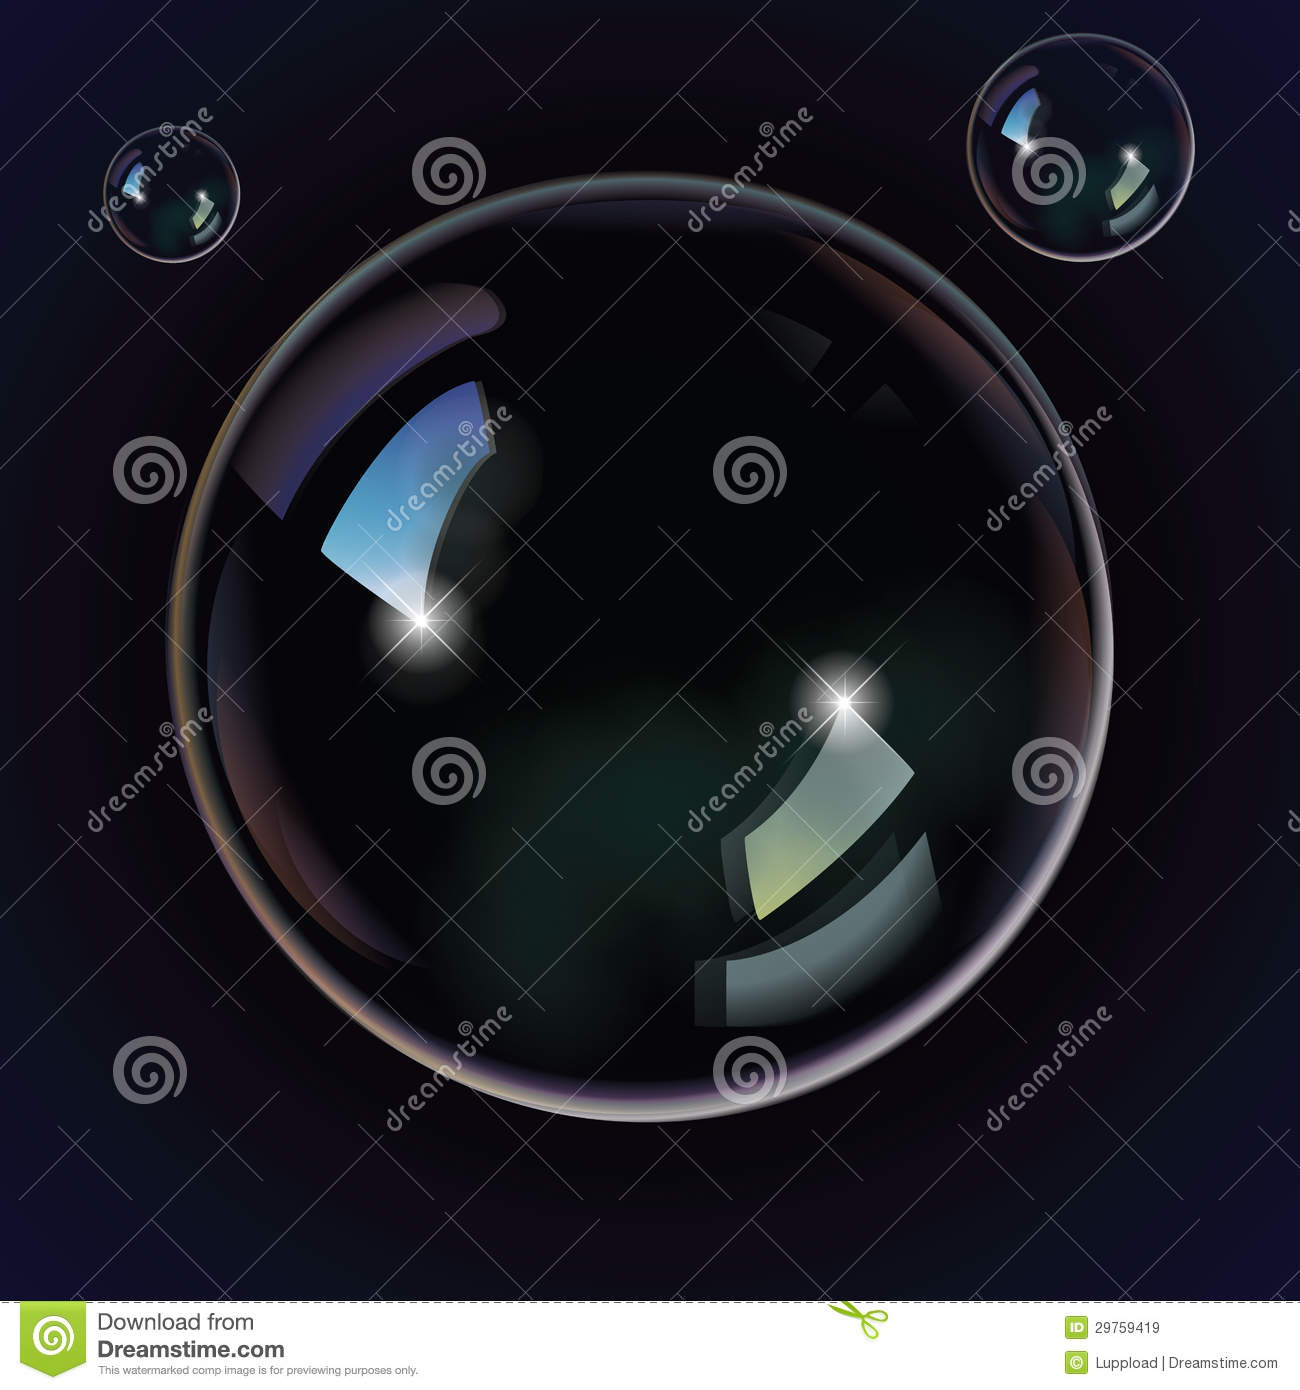 Soap bubble background download free vector art stock graphics - Royalty Free Stock Photo Background Blue Soap